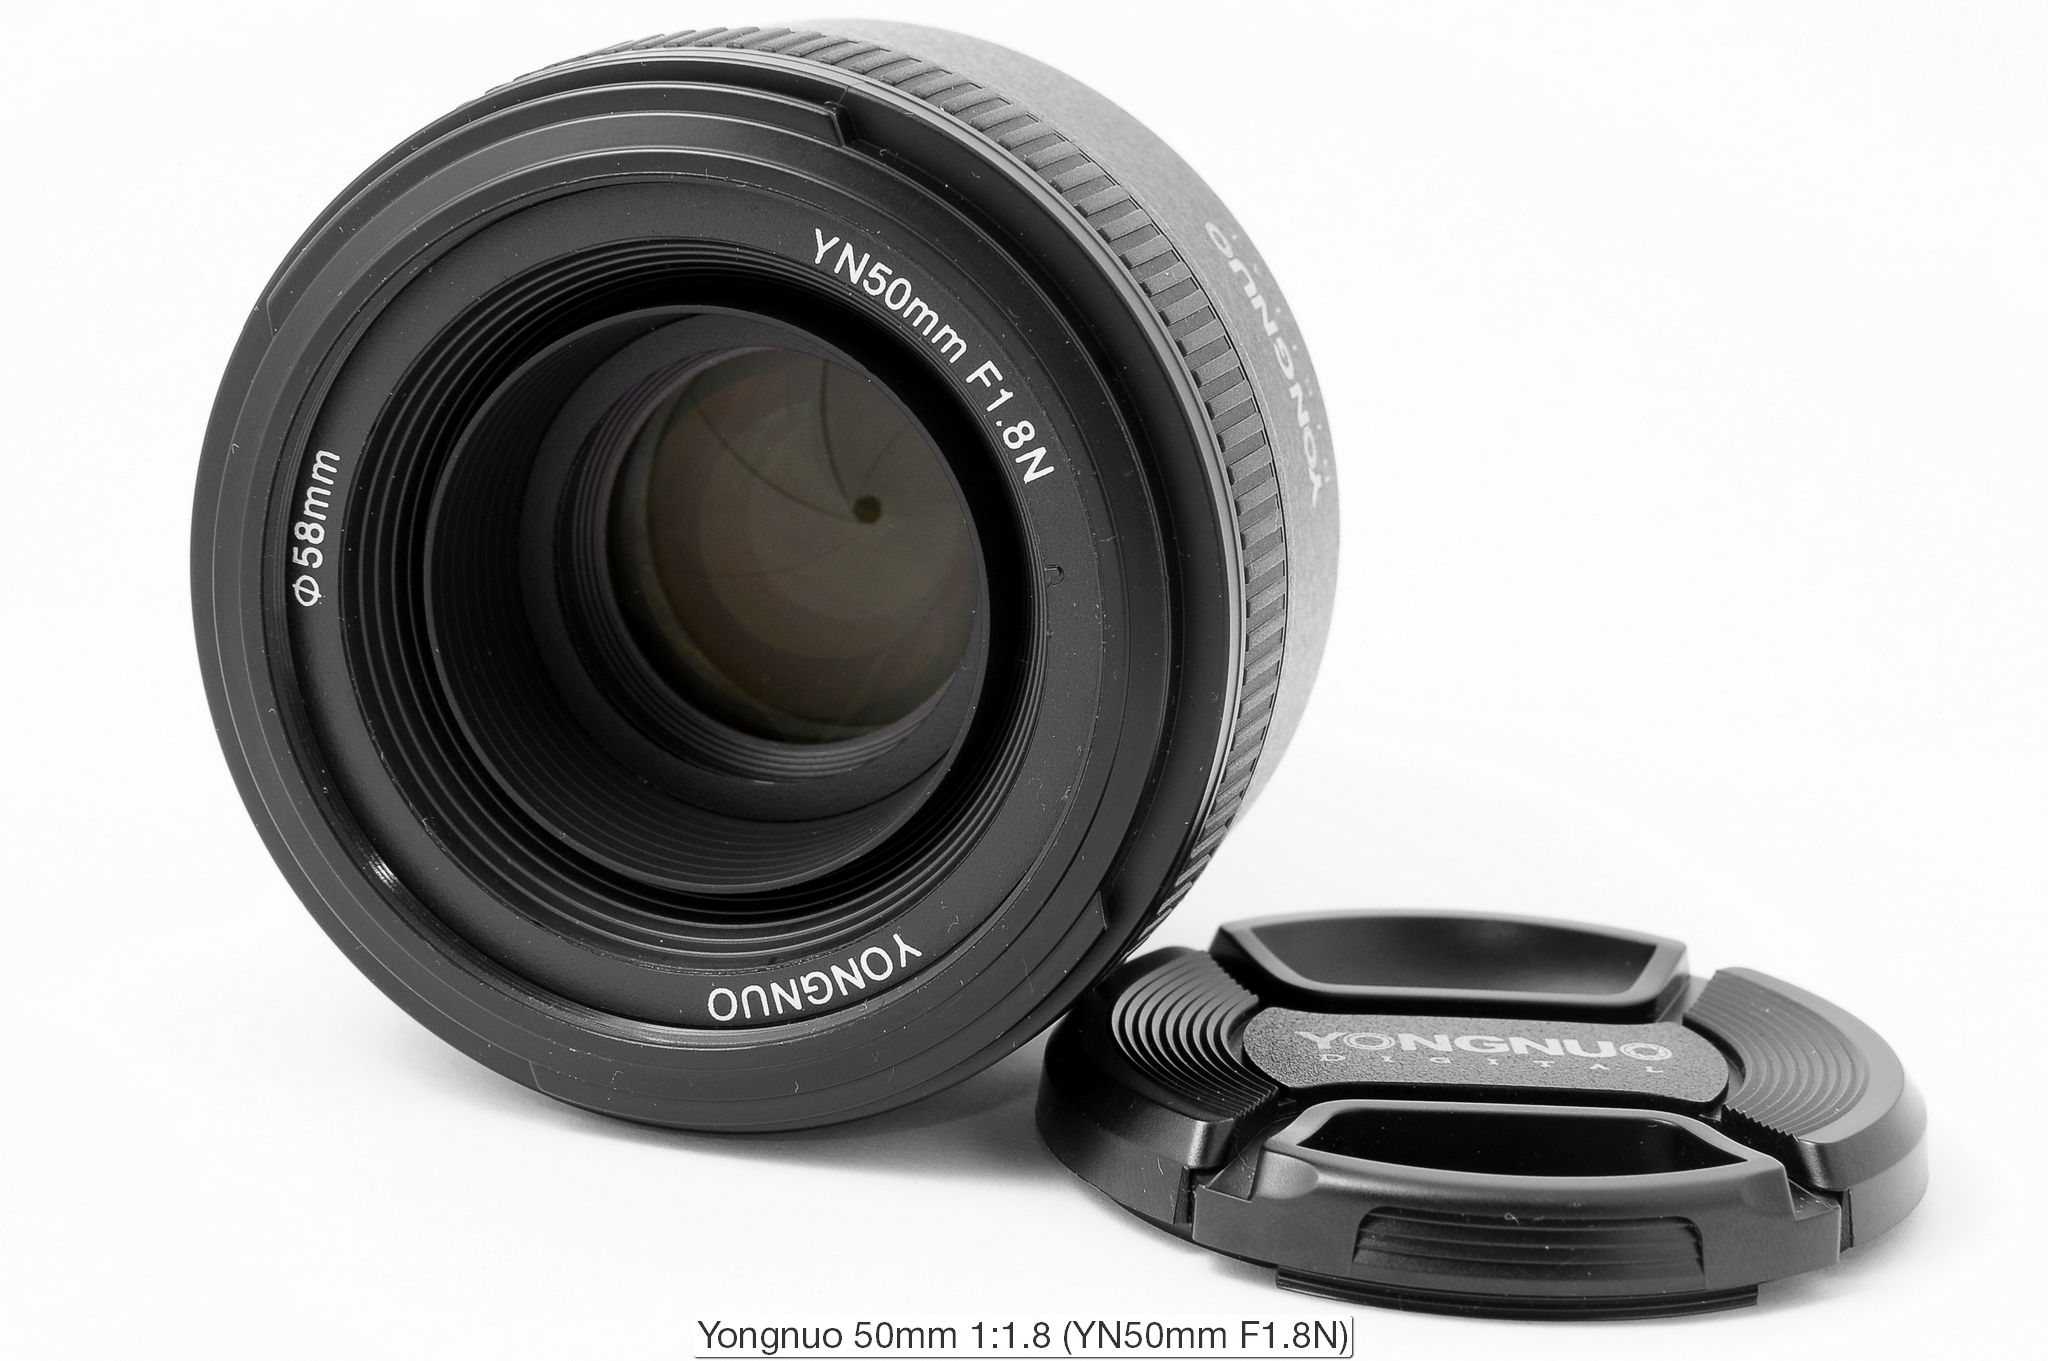 Yongnuo YN 50mm f/1 8 lens review (for Nikon F-mount) - Nikon Rumors